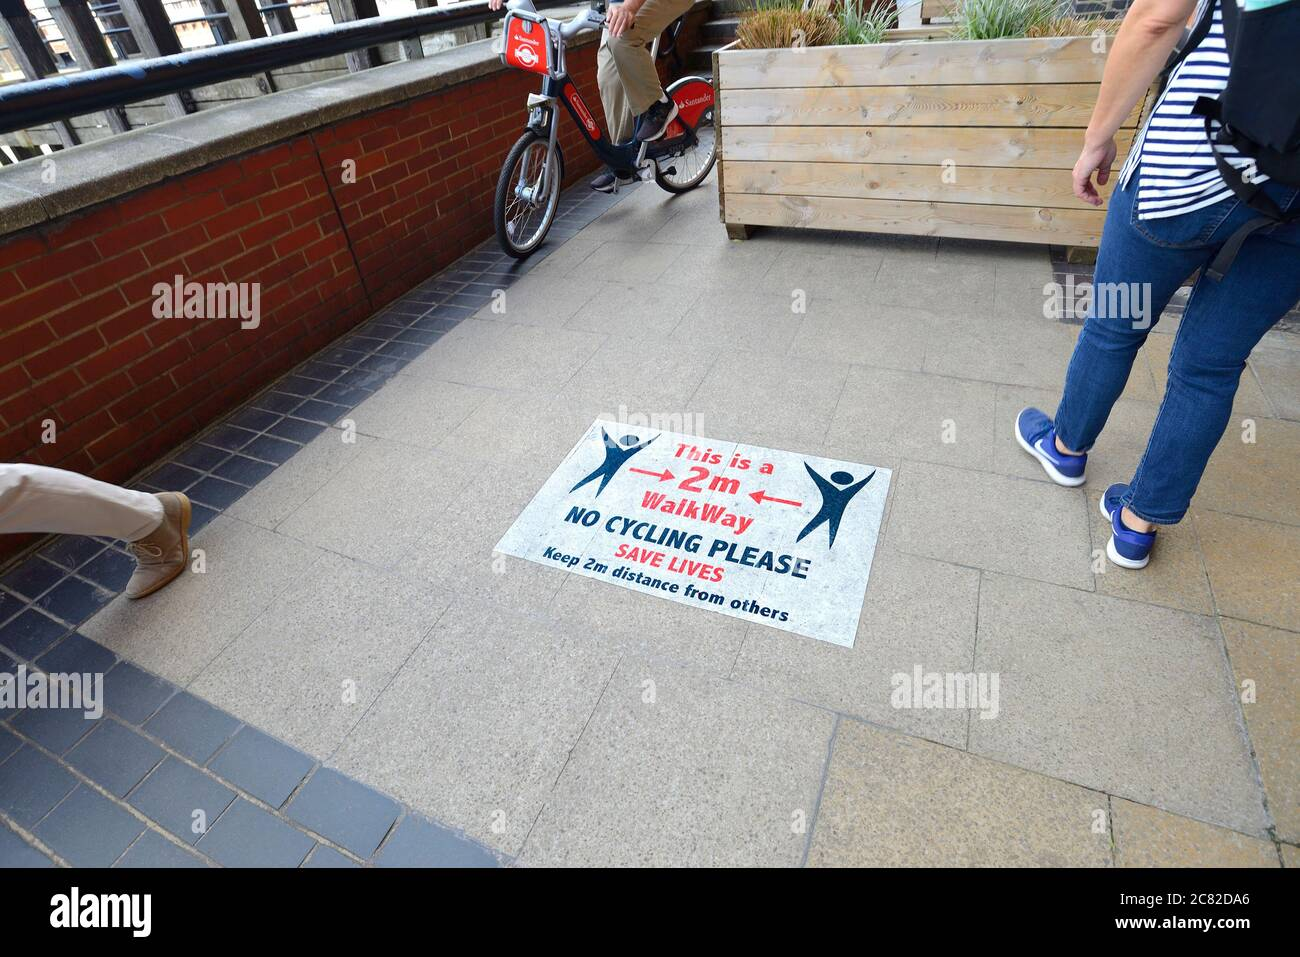 London, England, UK. COVID-19 precautions on the South Bank. Signs advising social distancing and no cycling - cyclist ignoring the signs Stock Photo